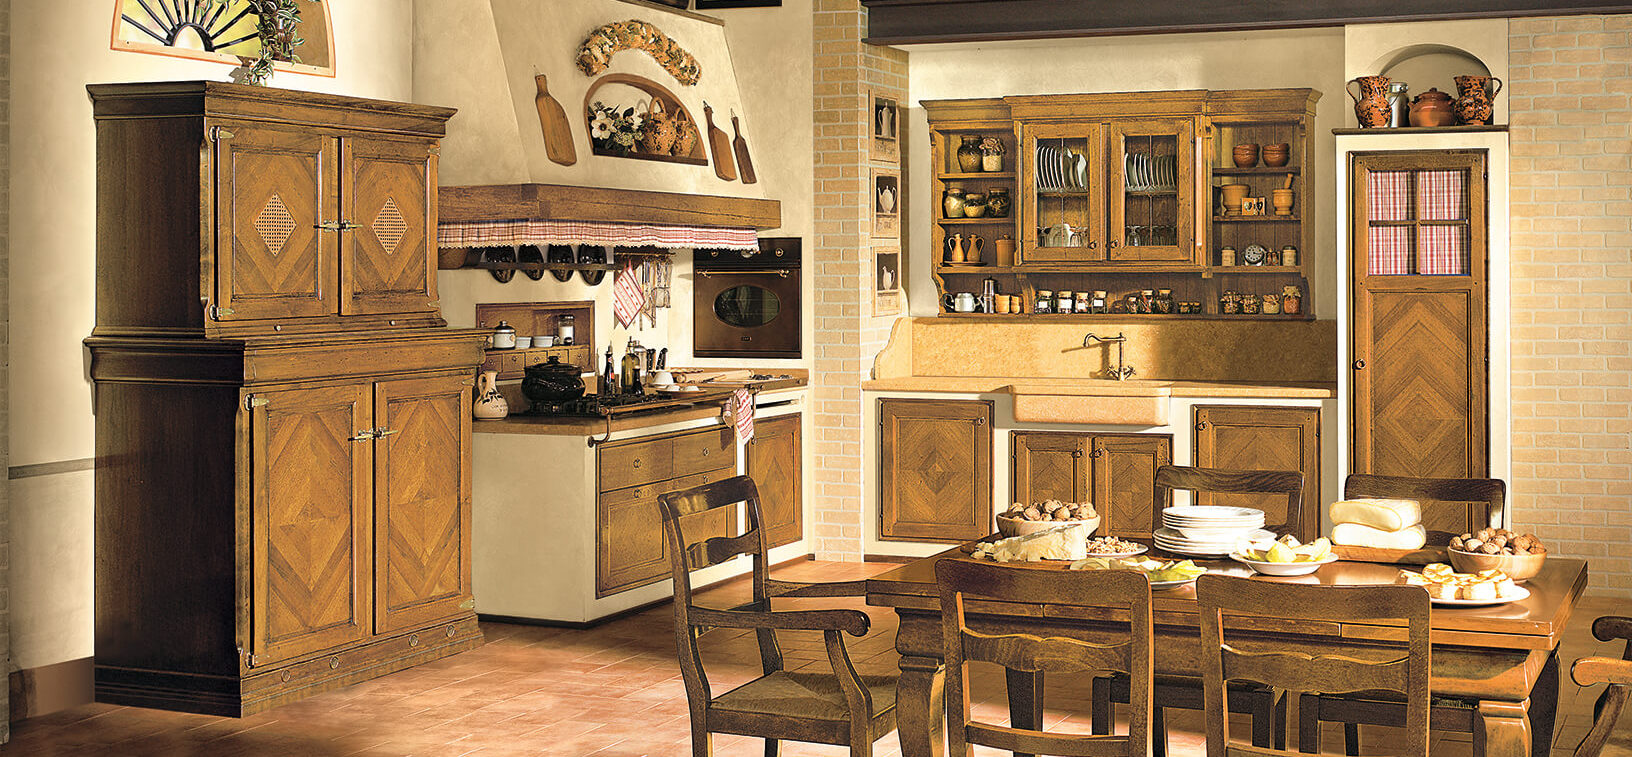 Cucina Old Style  La cucina country intramontabile  L